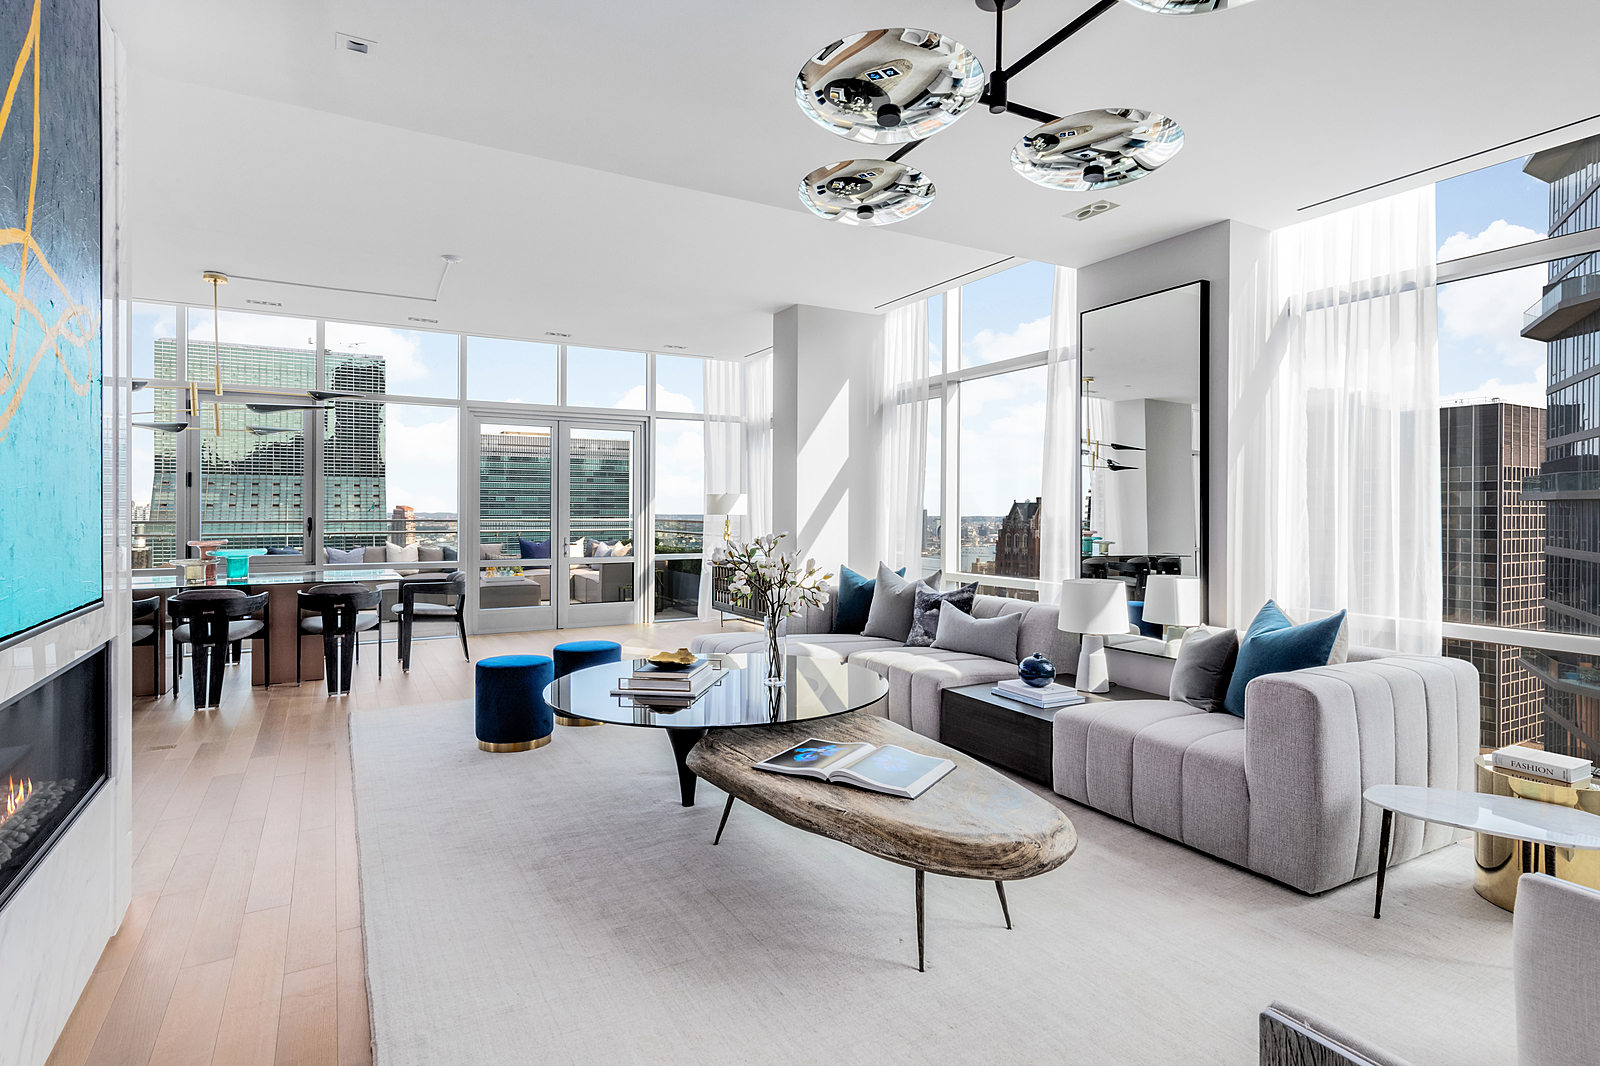 219East44thStreetPH-MidtownNewYork_Aaron_Ross_DouglasElliman_Photography_83045122_high_res